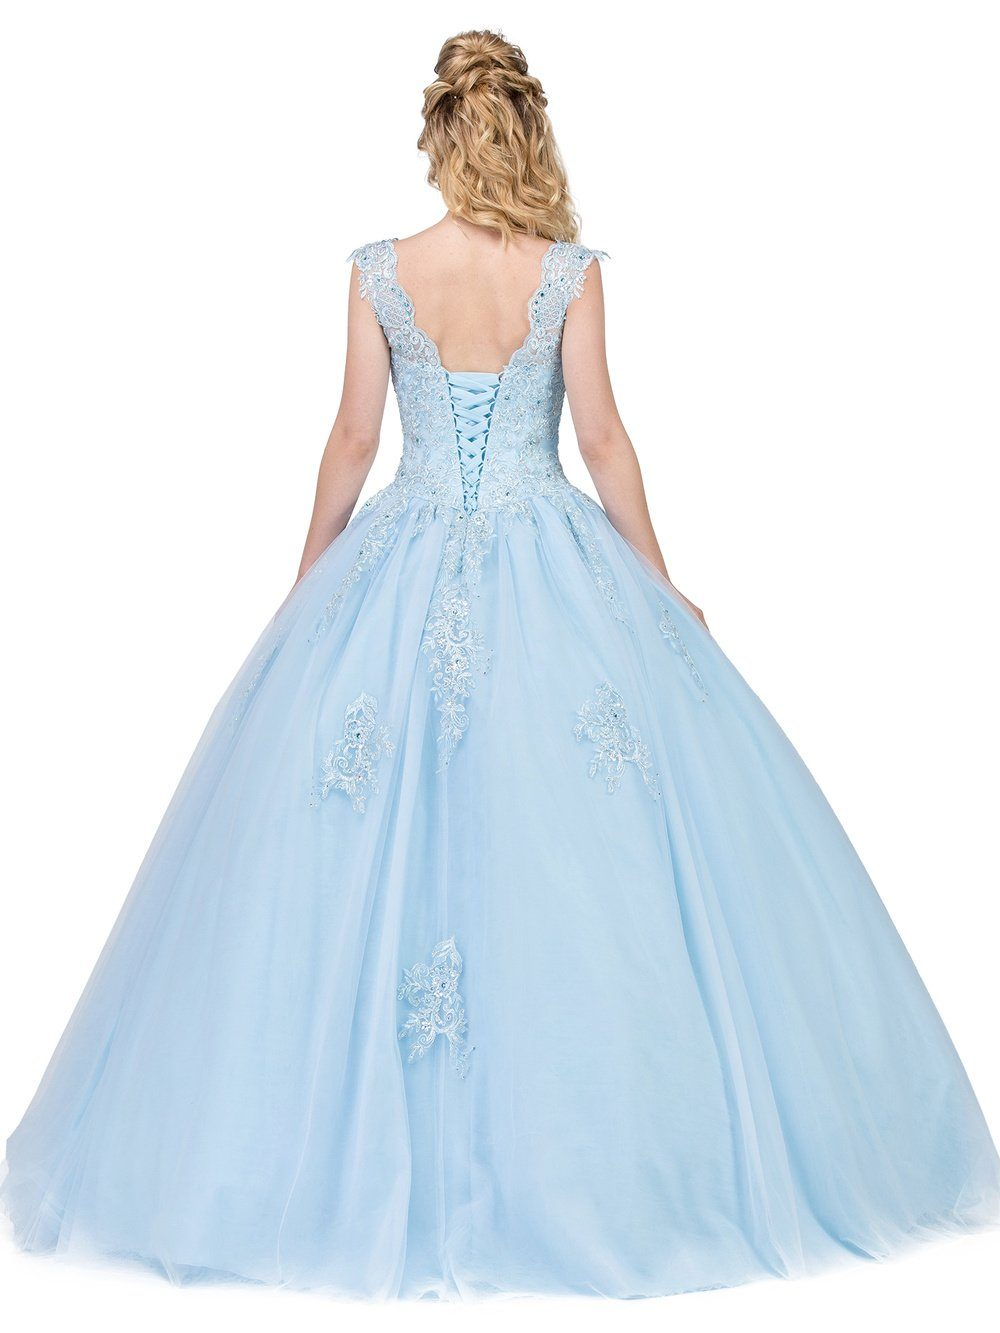 Puffy Blue Quinceanera Dress Dq1287-Simply Fab Dress